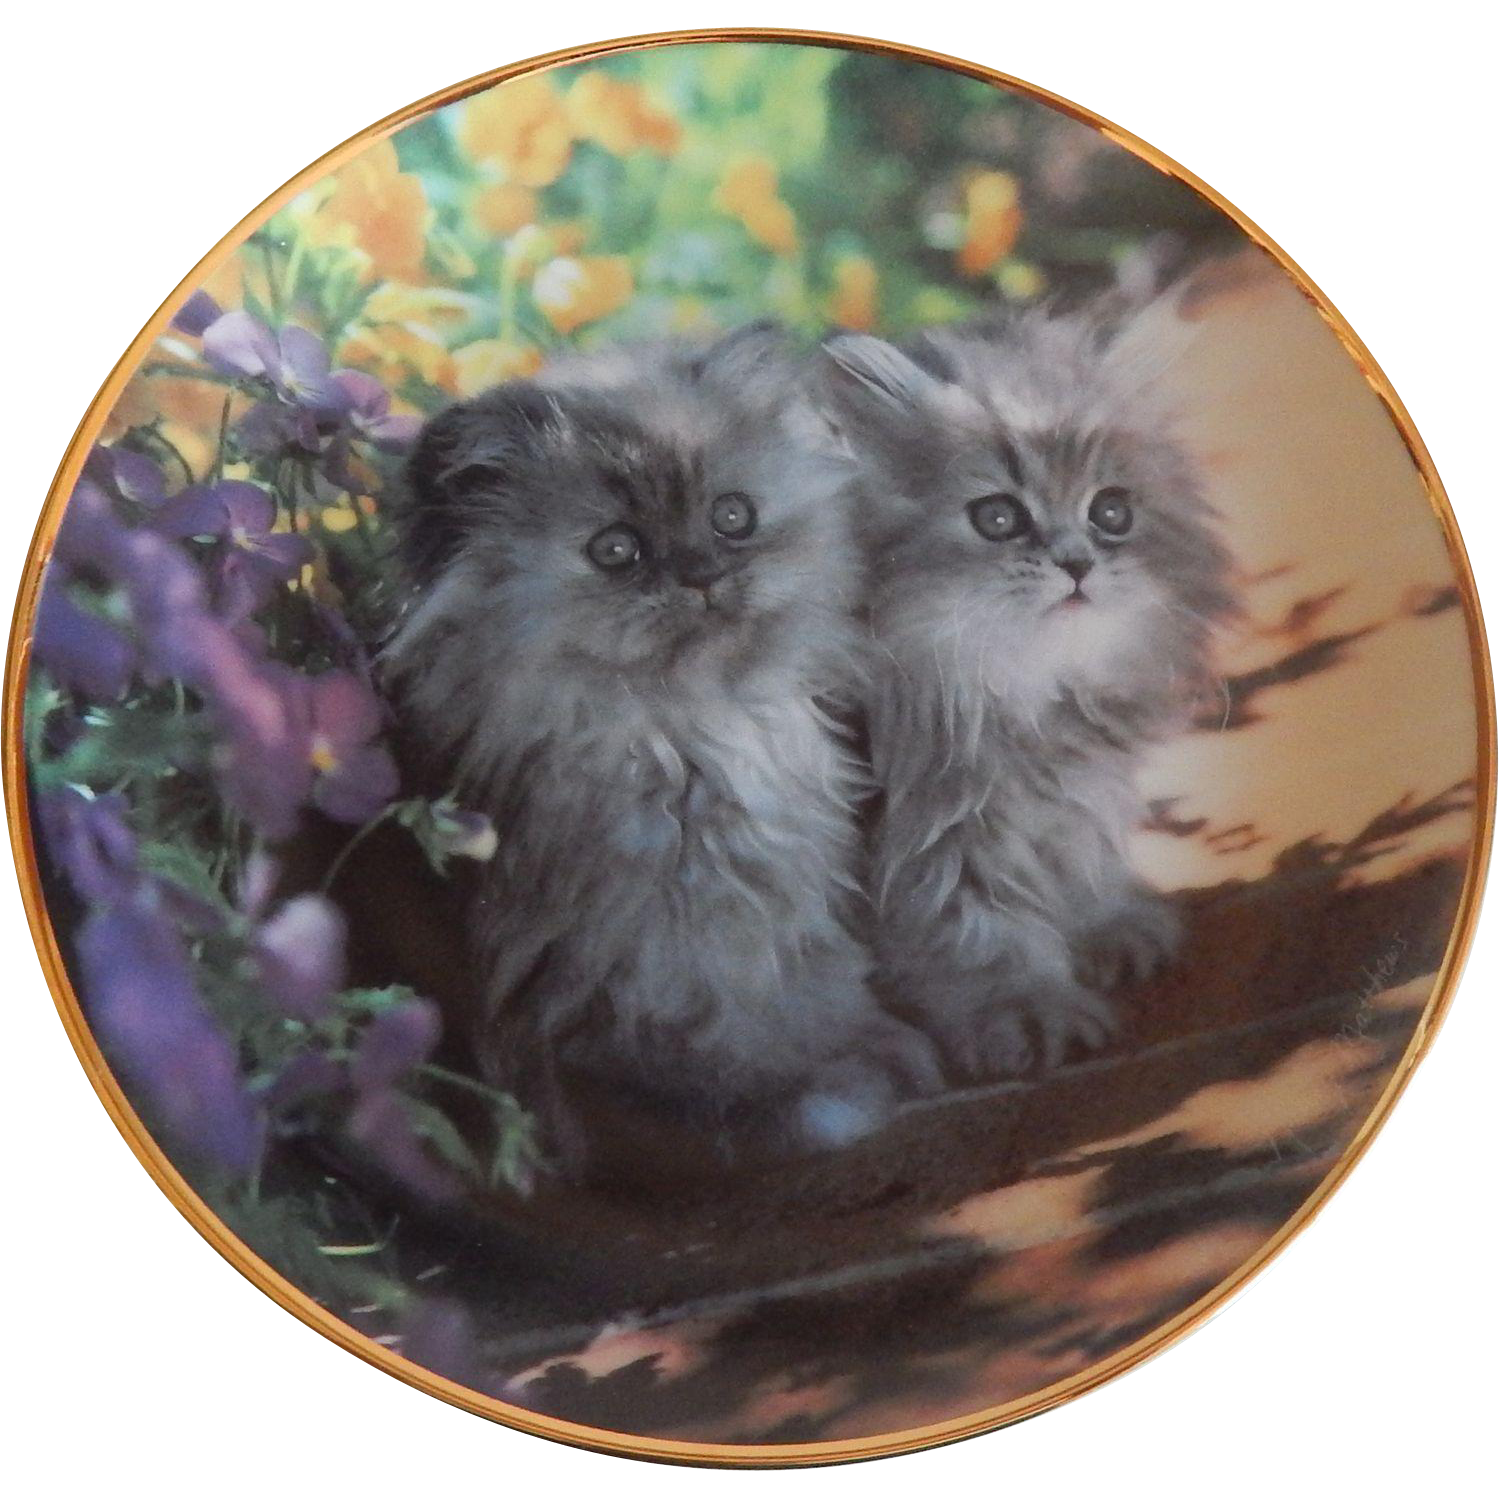 Franklin Mint Sitting Pretty Kitty Cat Plate